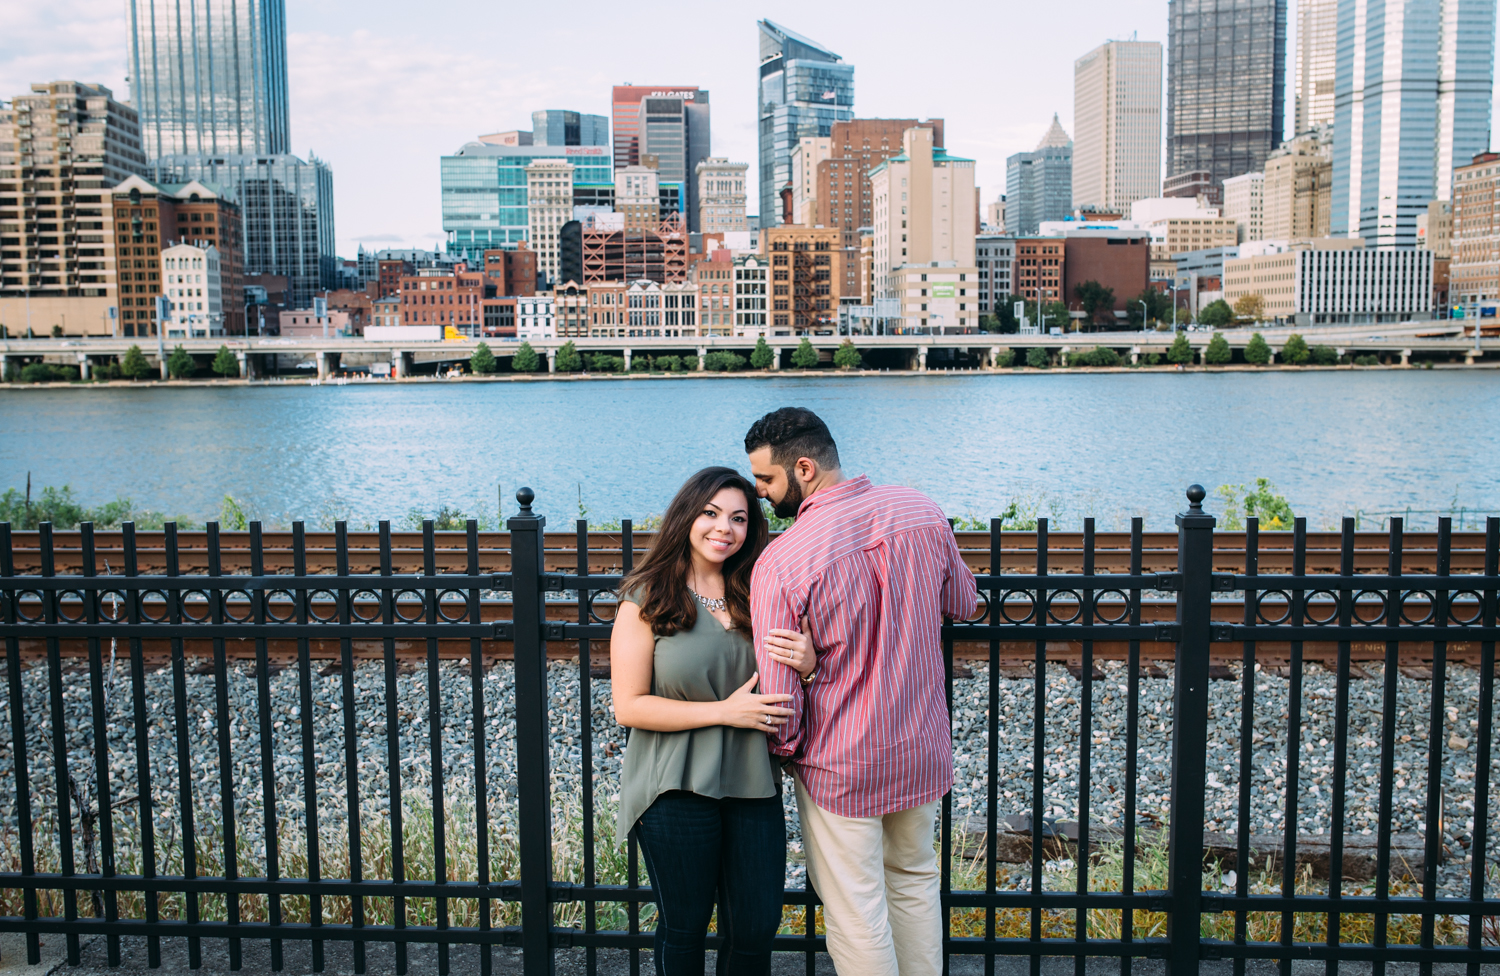 Ashley-reed-photography-pittsburgh-engagement-engagementphotography-engagementphotographer-stationsquare-statio-square-pittsburghengagementphotography-6.jpg